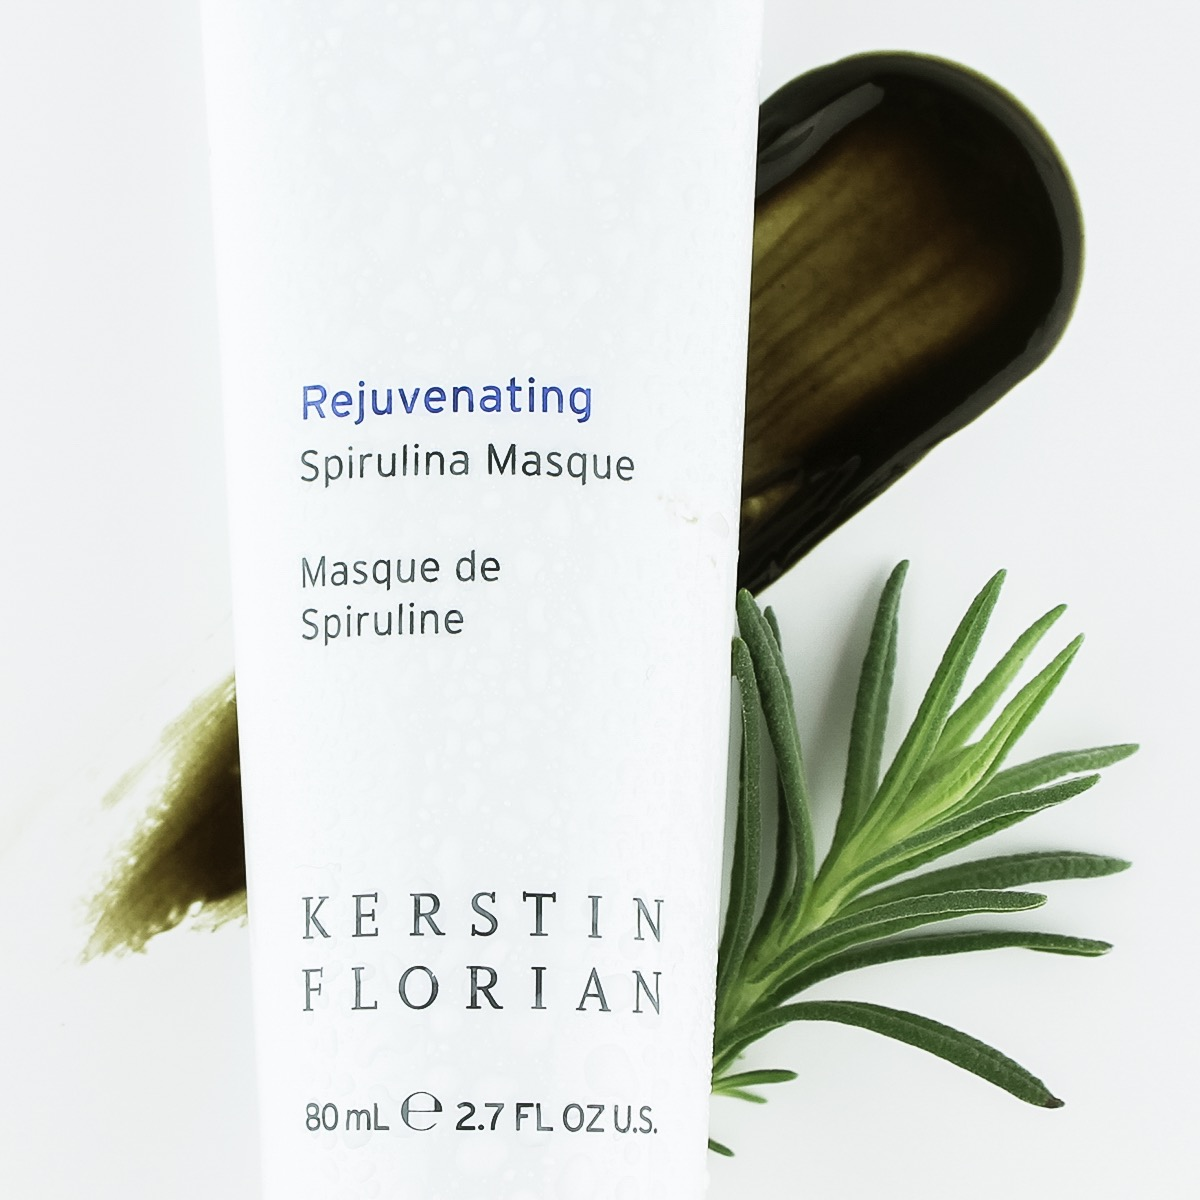 Rejuvenate & Rehydrate your Skin with Plant-Based Skin Care